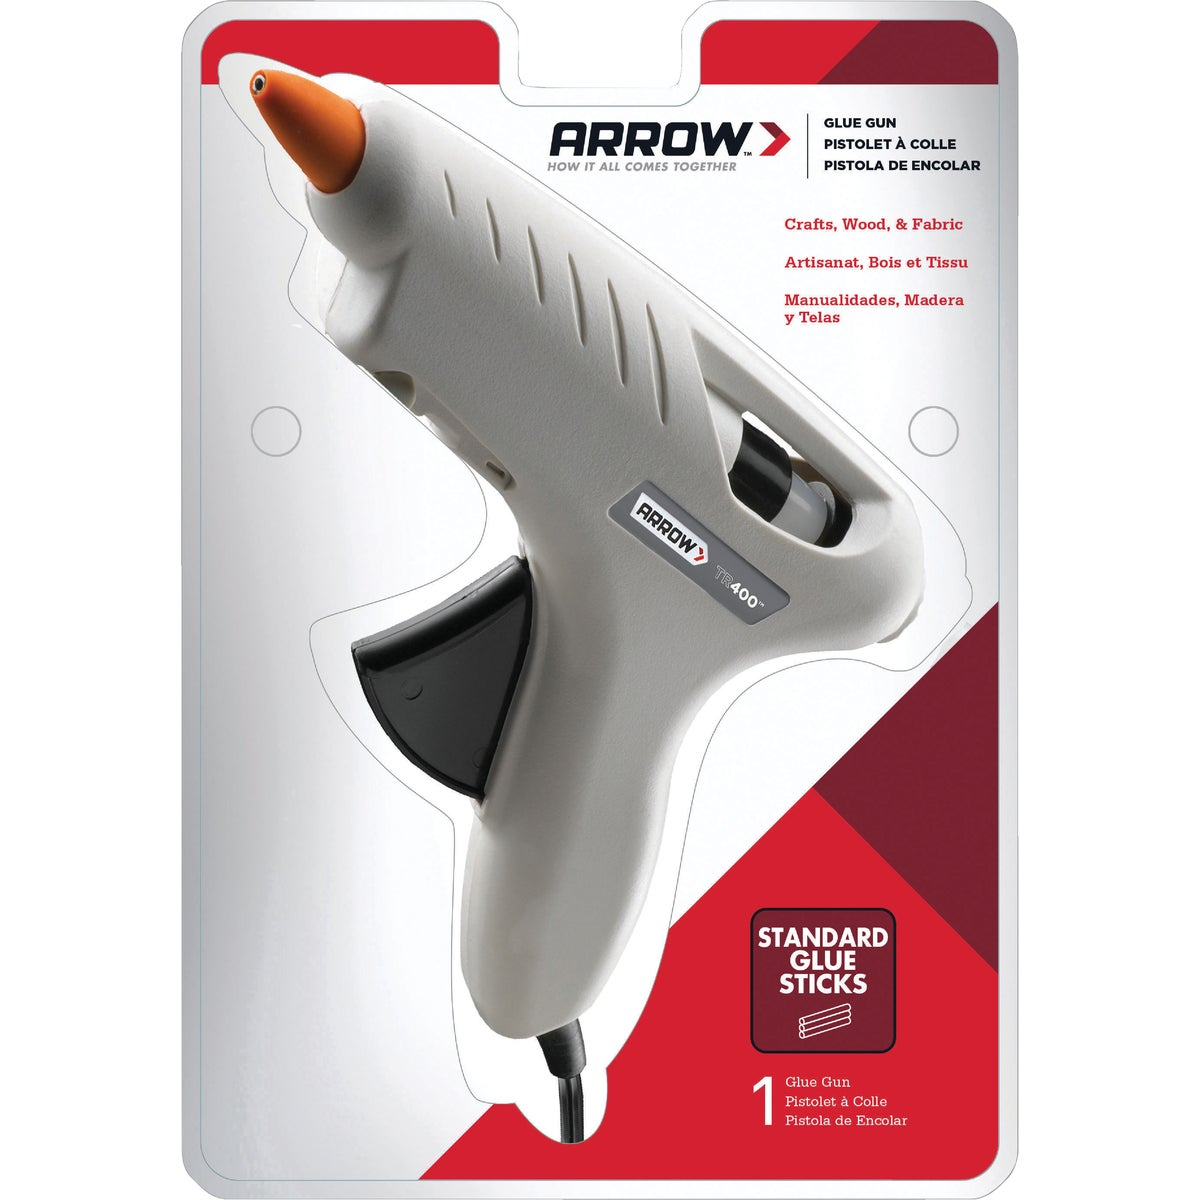 HI-TEMP GLUE GUN - TR400 by Arrow Fastener Co